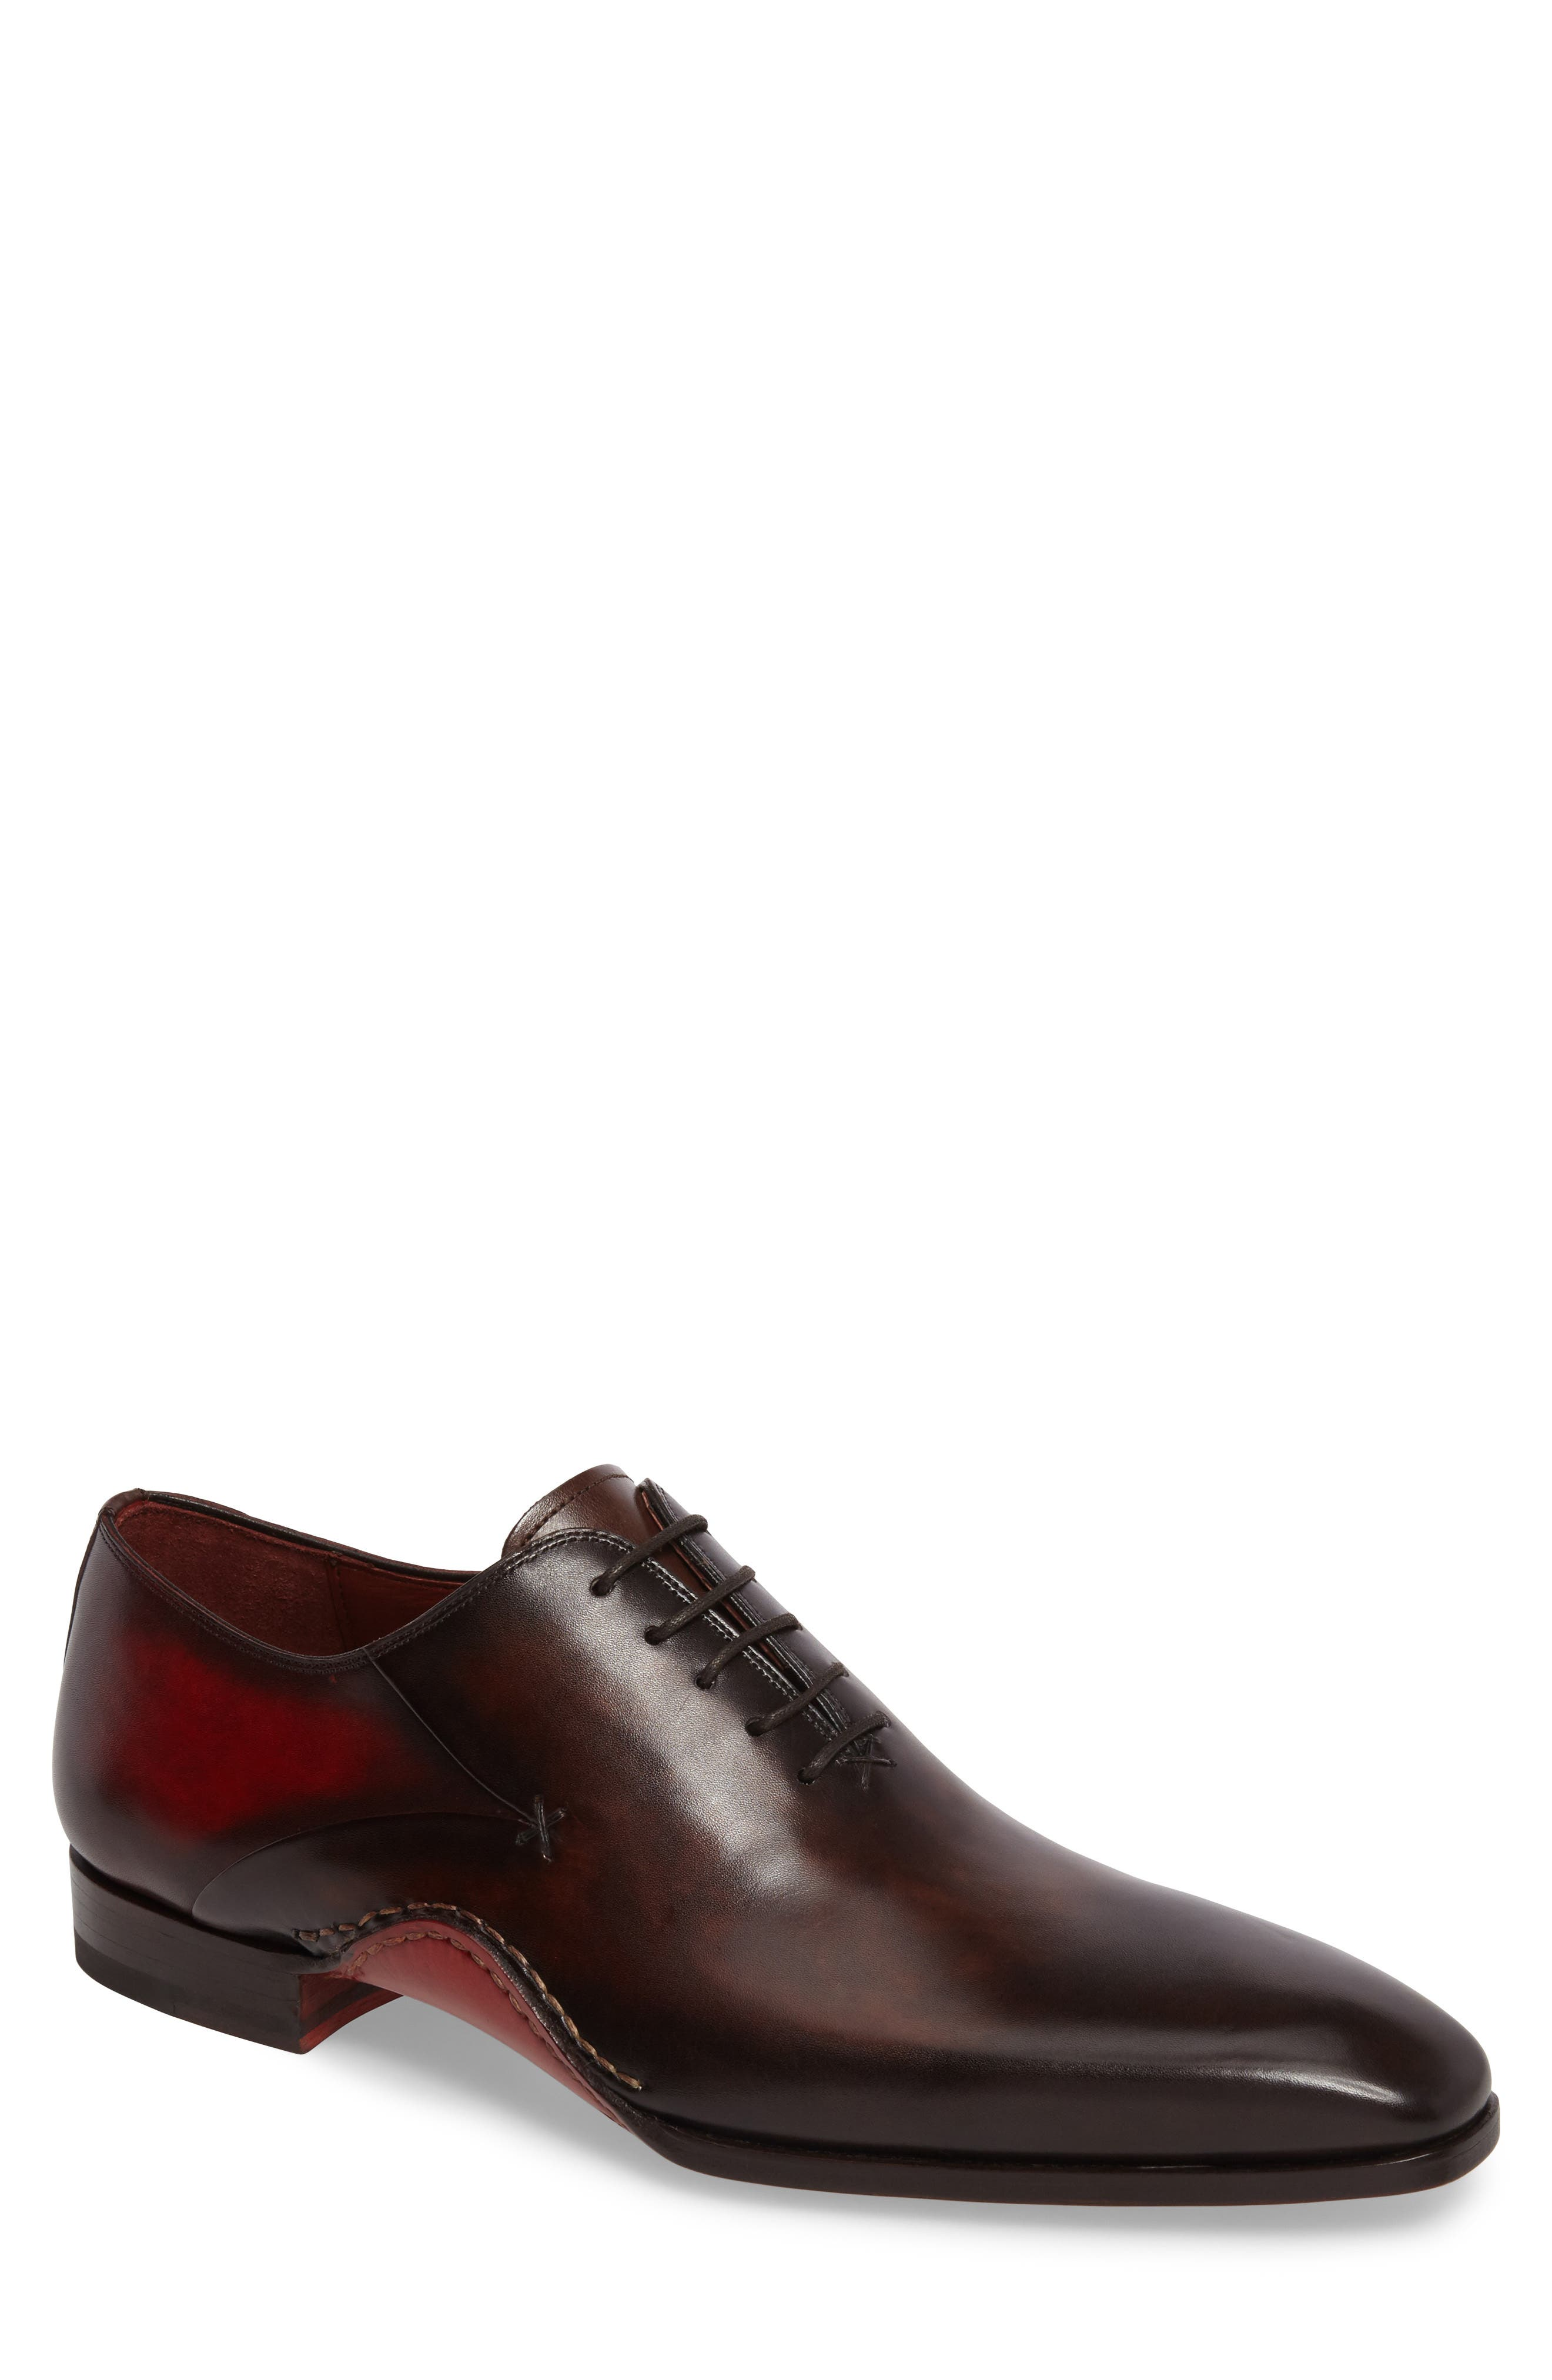 Cantabria Plain Toe Oxford,                         Main,                         color, BROWN/ RED LEATHER